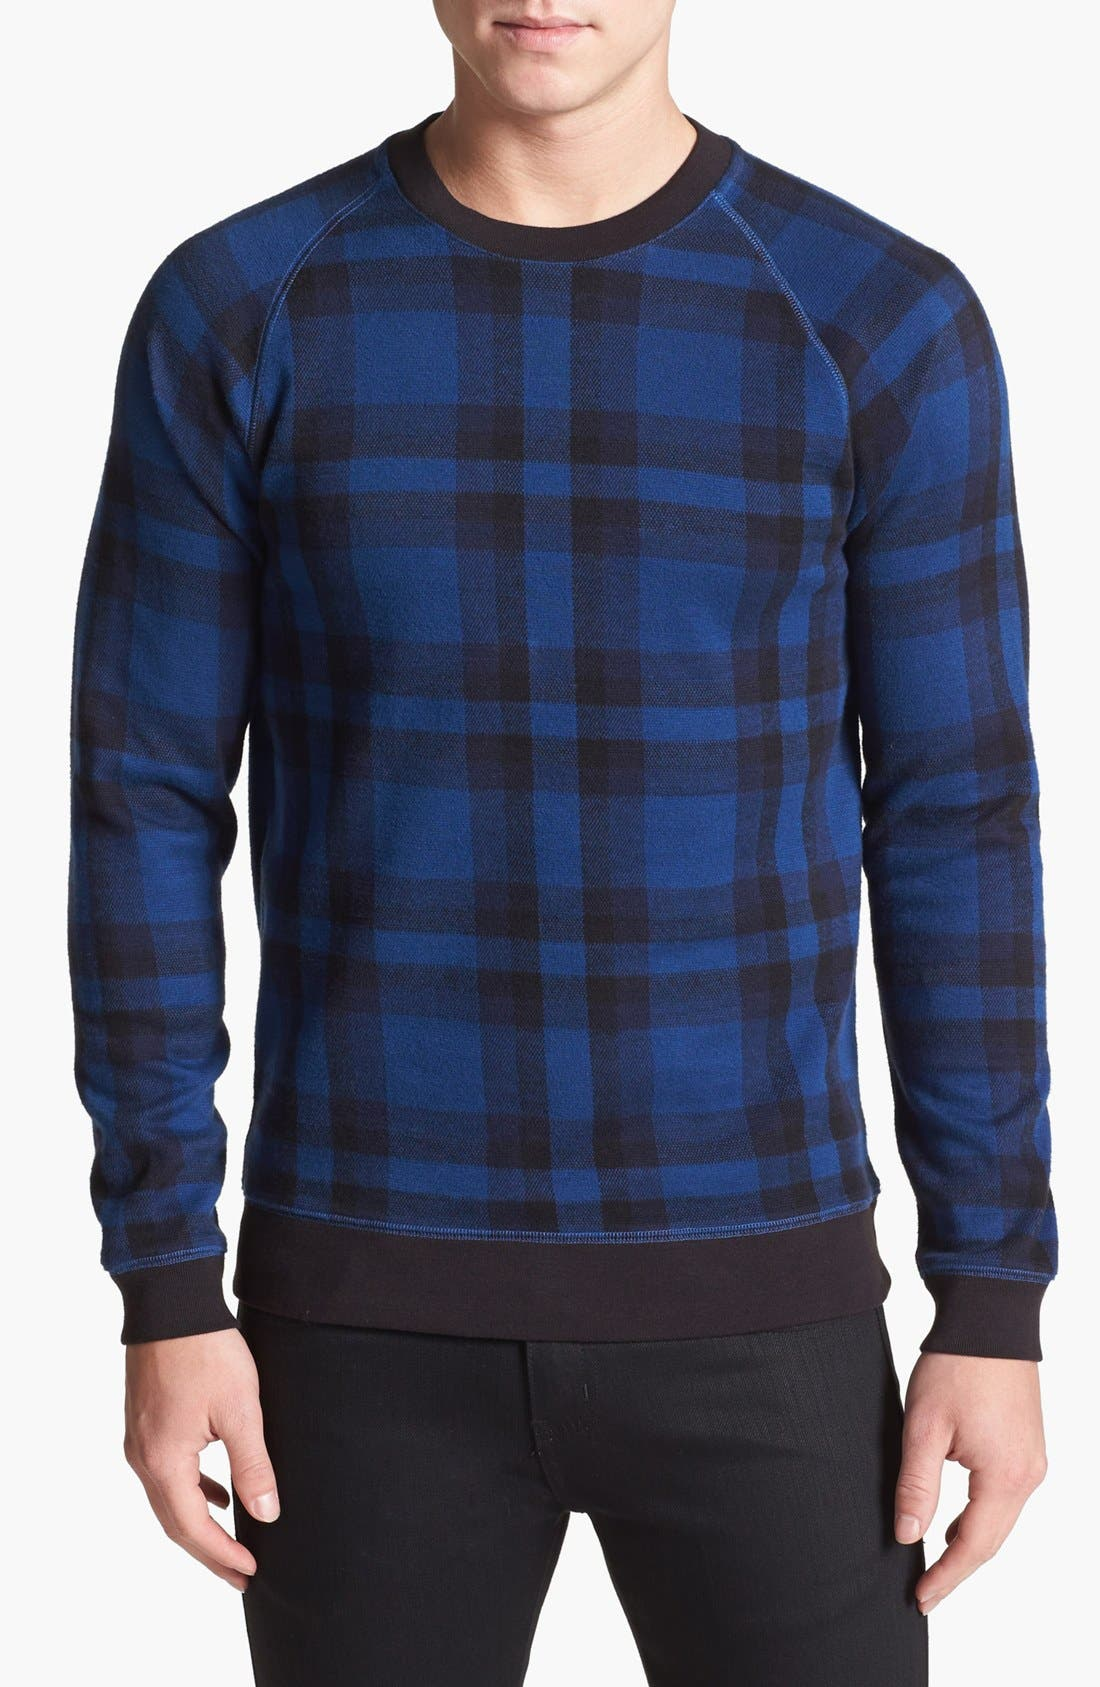 Alternate Image 1 Selected - MARC BY MARC JACOBS 'Sheffield' Plaid Sweatshirt